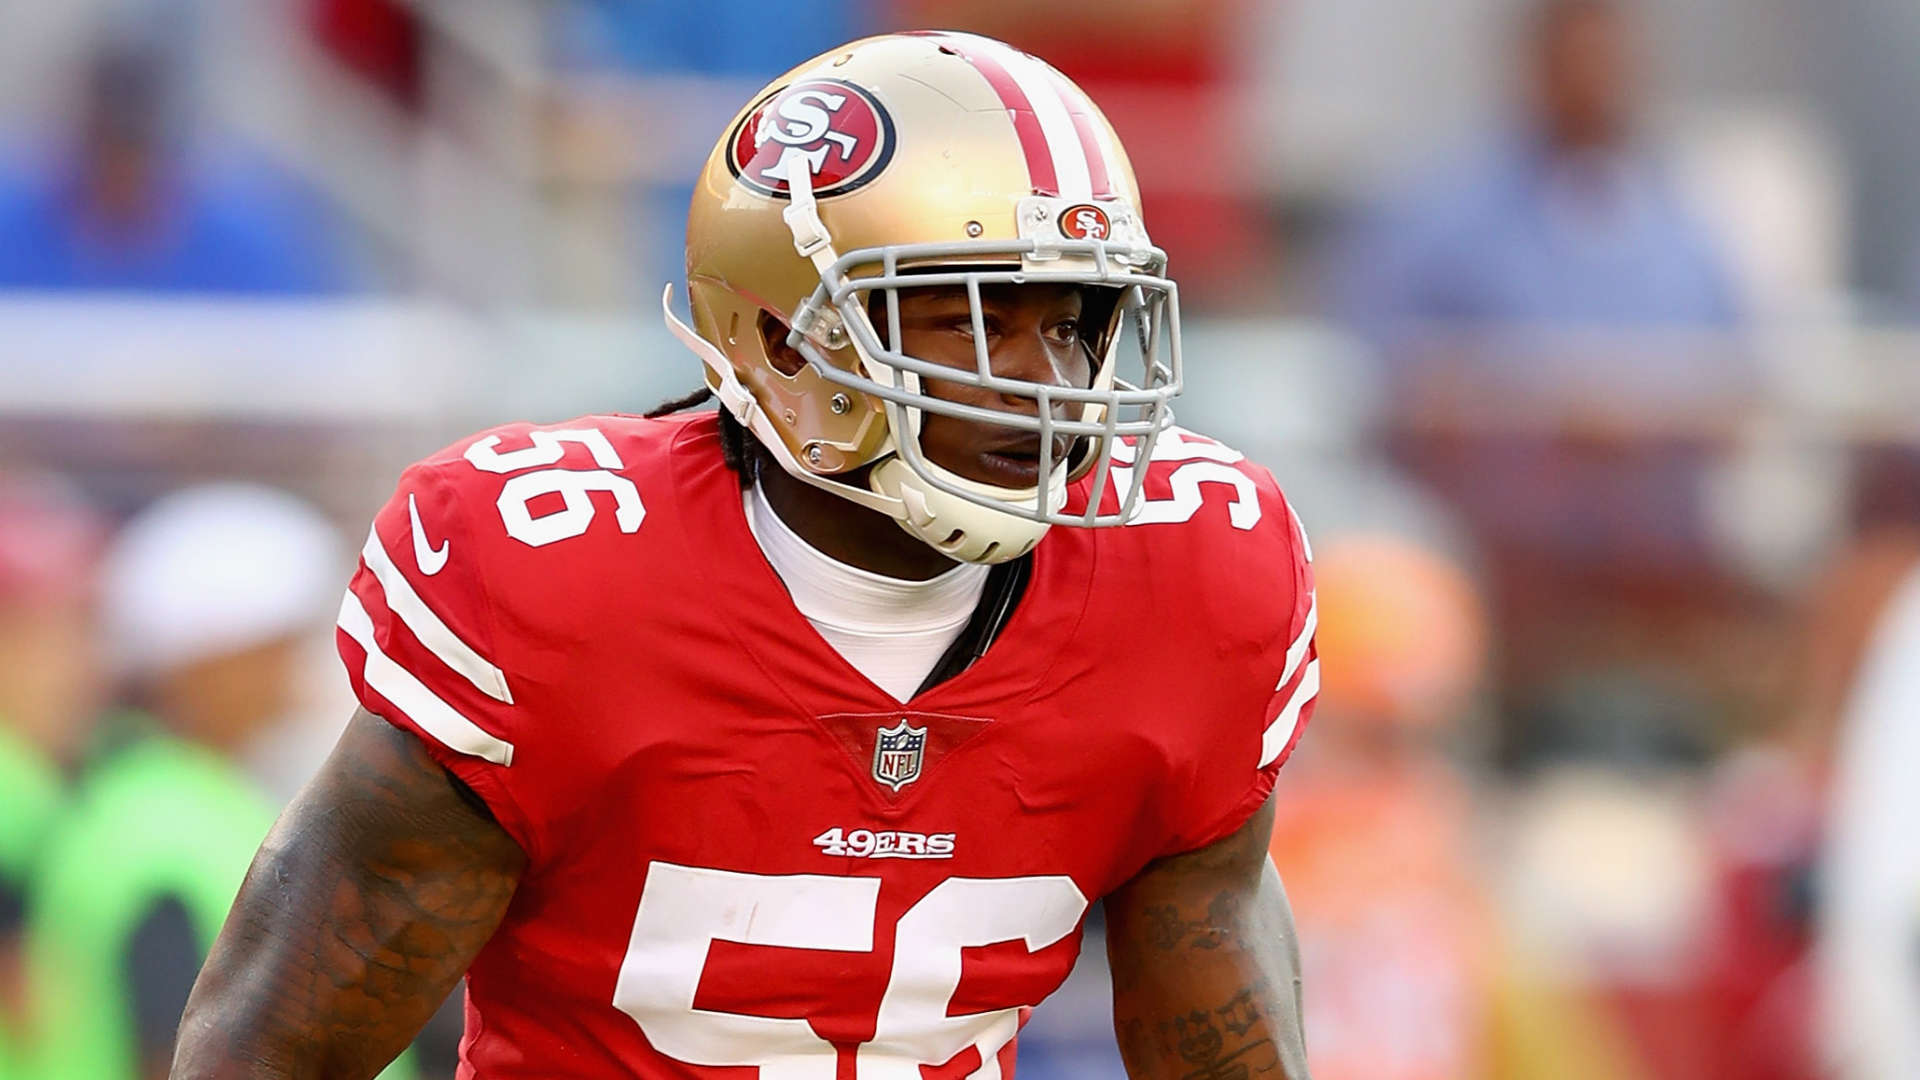 Reuben Foster's accuser will cooperate with authorities, her attorney says